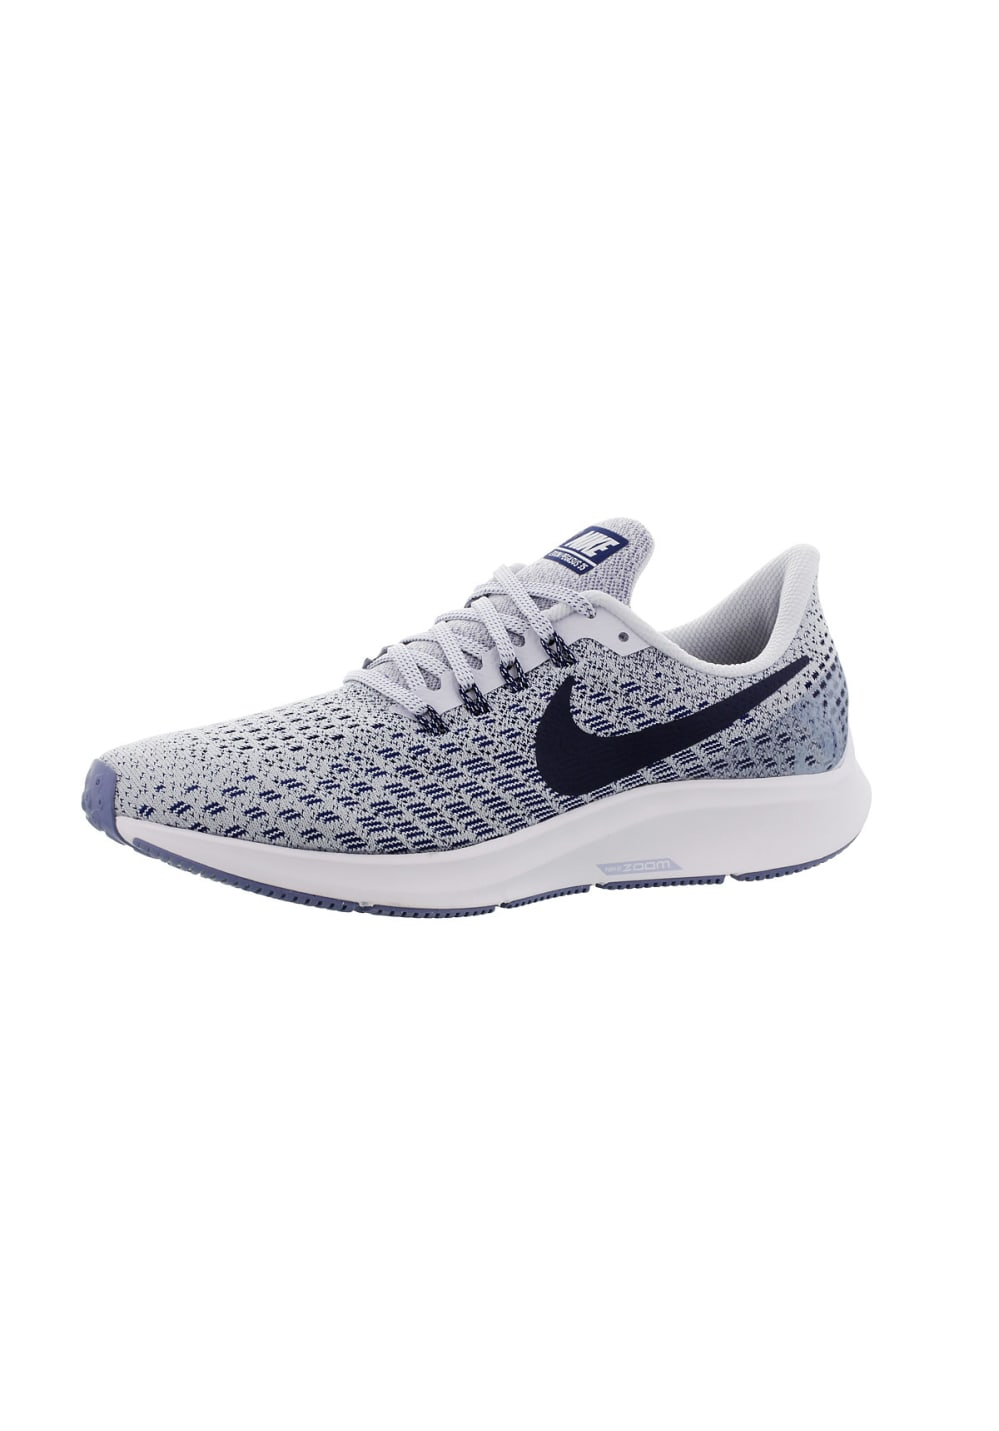 best service 653f9 13483 Nike Air Zoom Pegasus 35 - Running shoes for Women - Grey